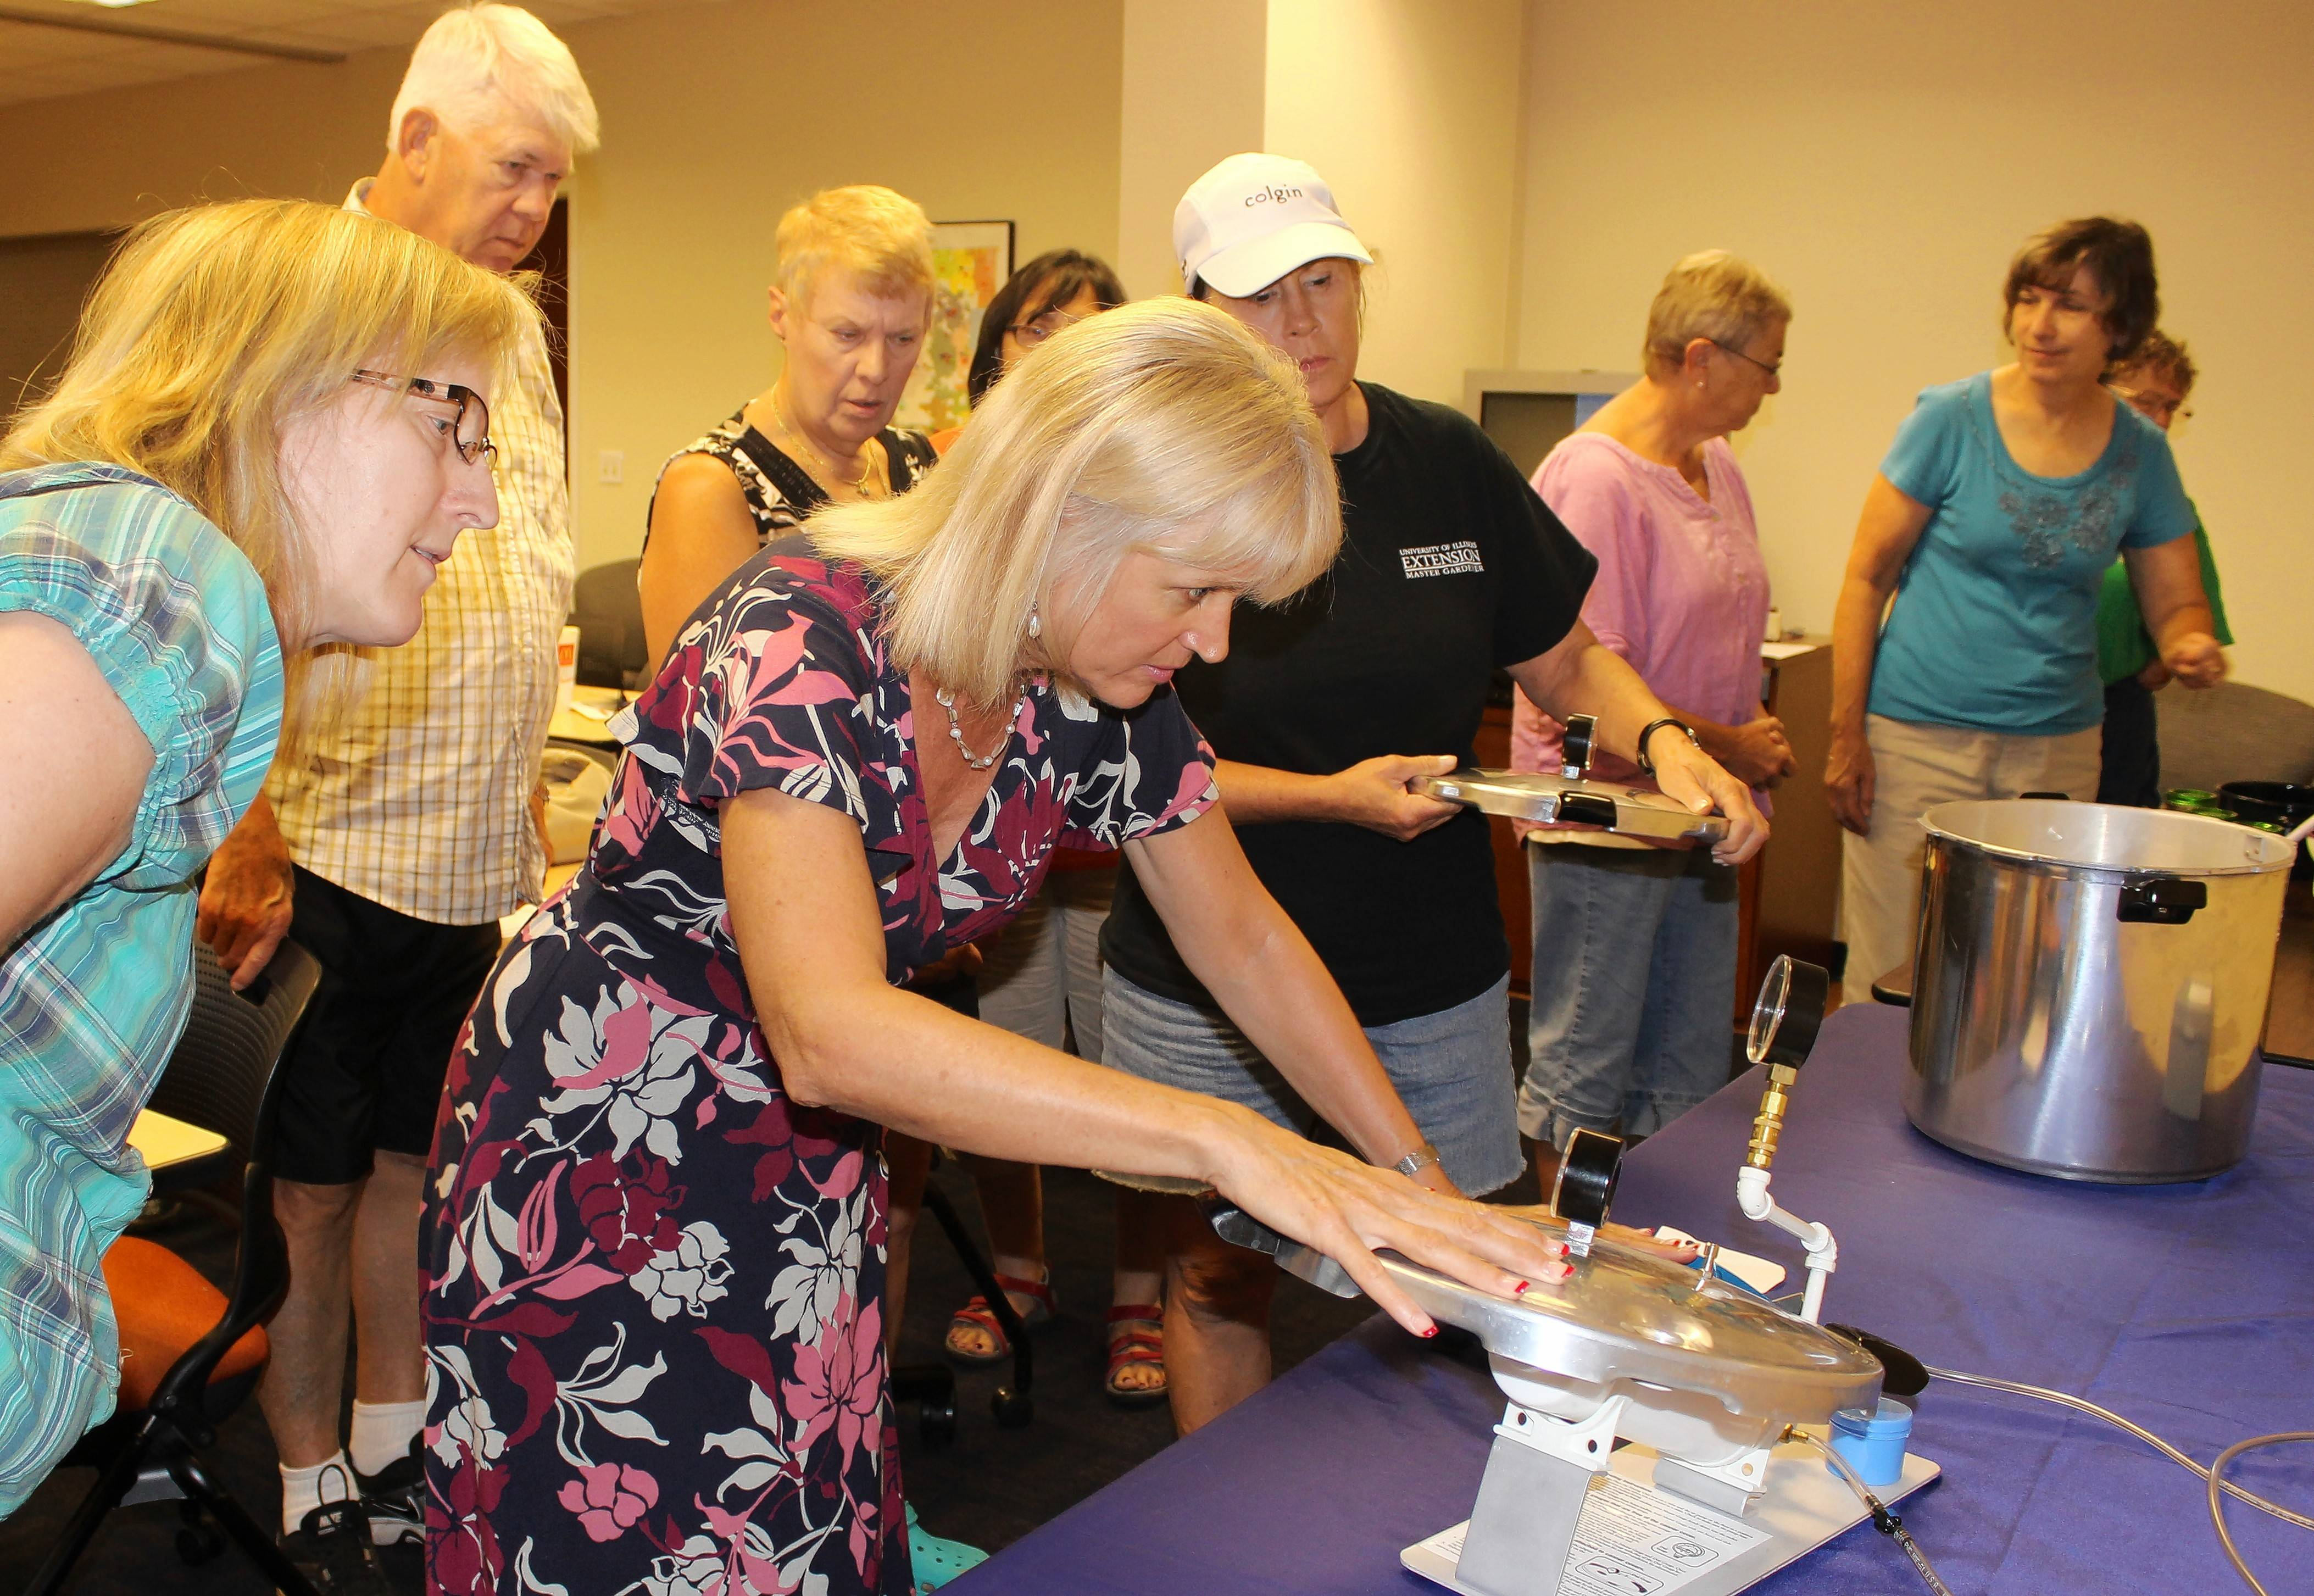 Home food preservation enthusiasts can get their pressure canner equipment tested at the University of Illinois Extension office on Tuesday, June 12.